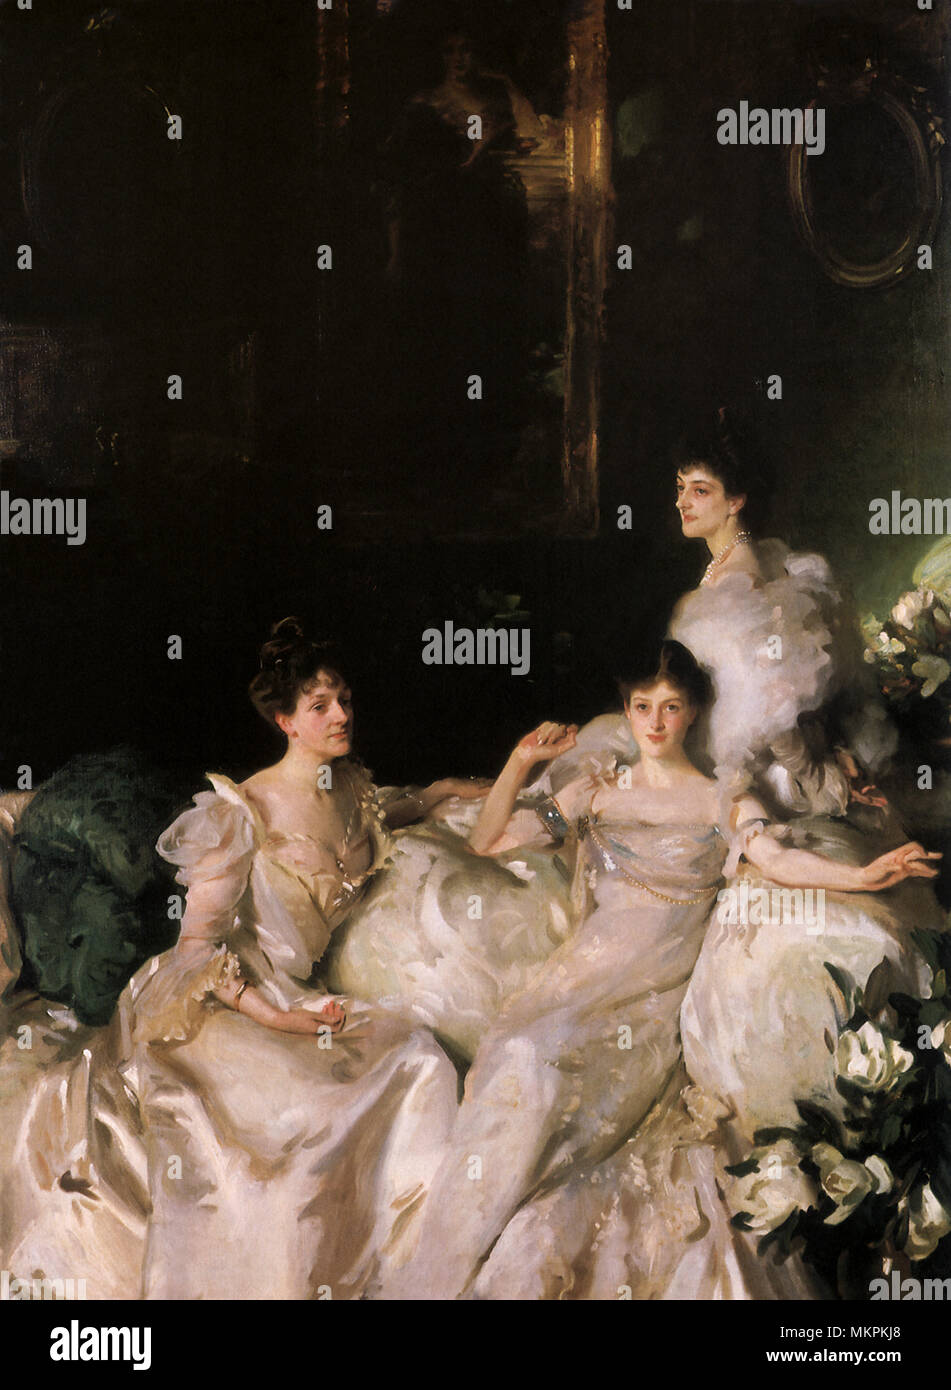 The Wyndham Sisters: Lady Elcho, Mrs. Adeane, & Mrs. Tennant - Stock Image